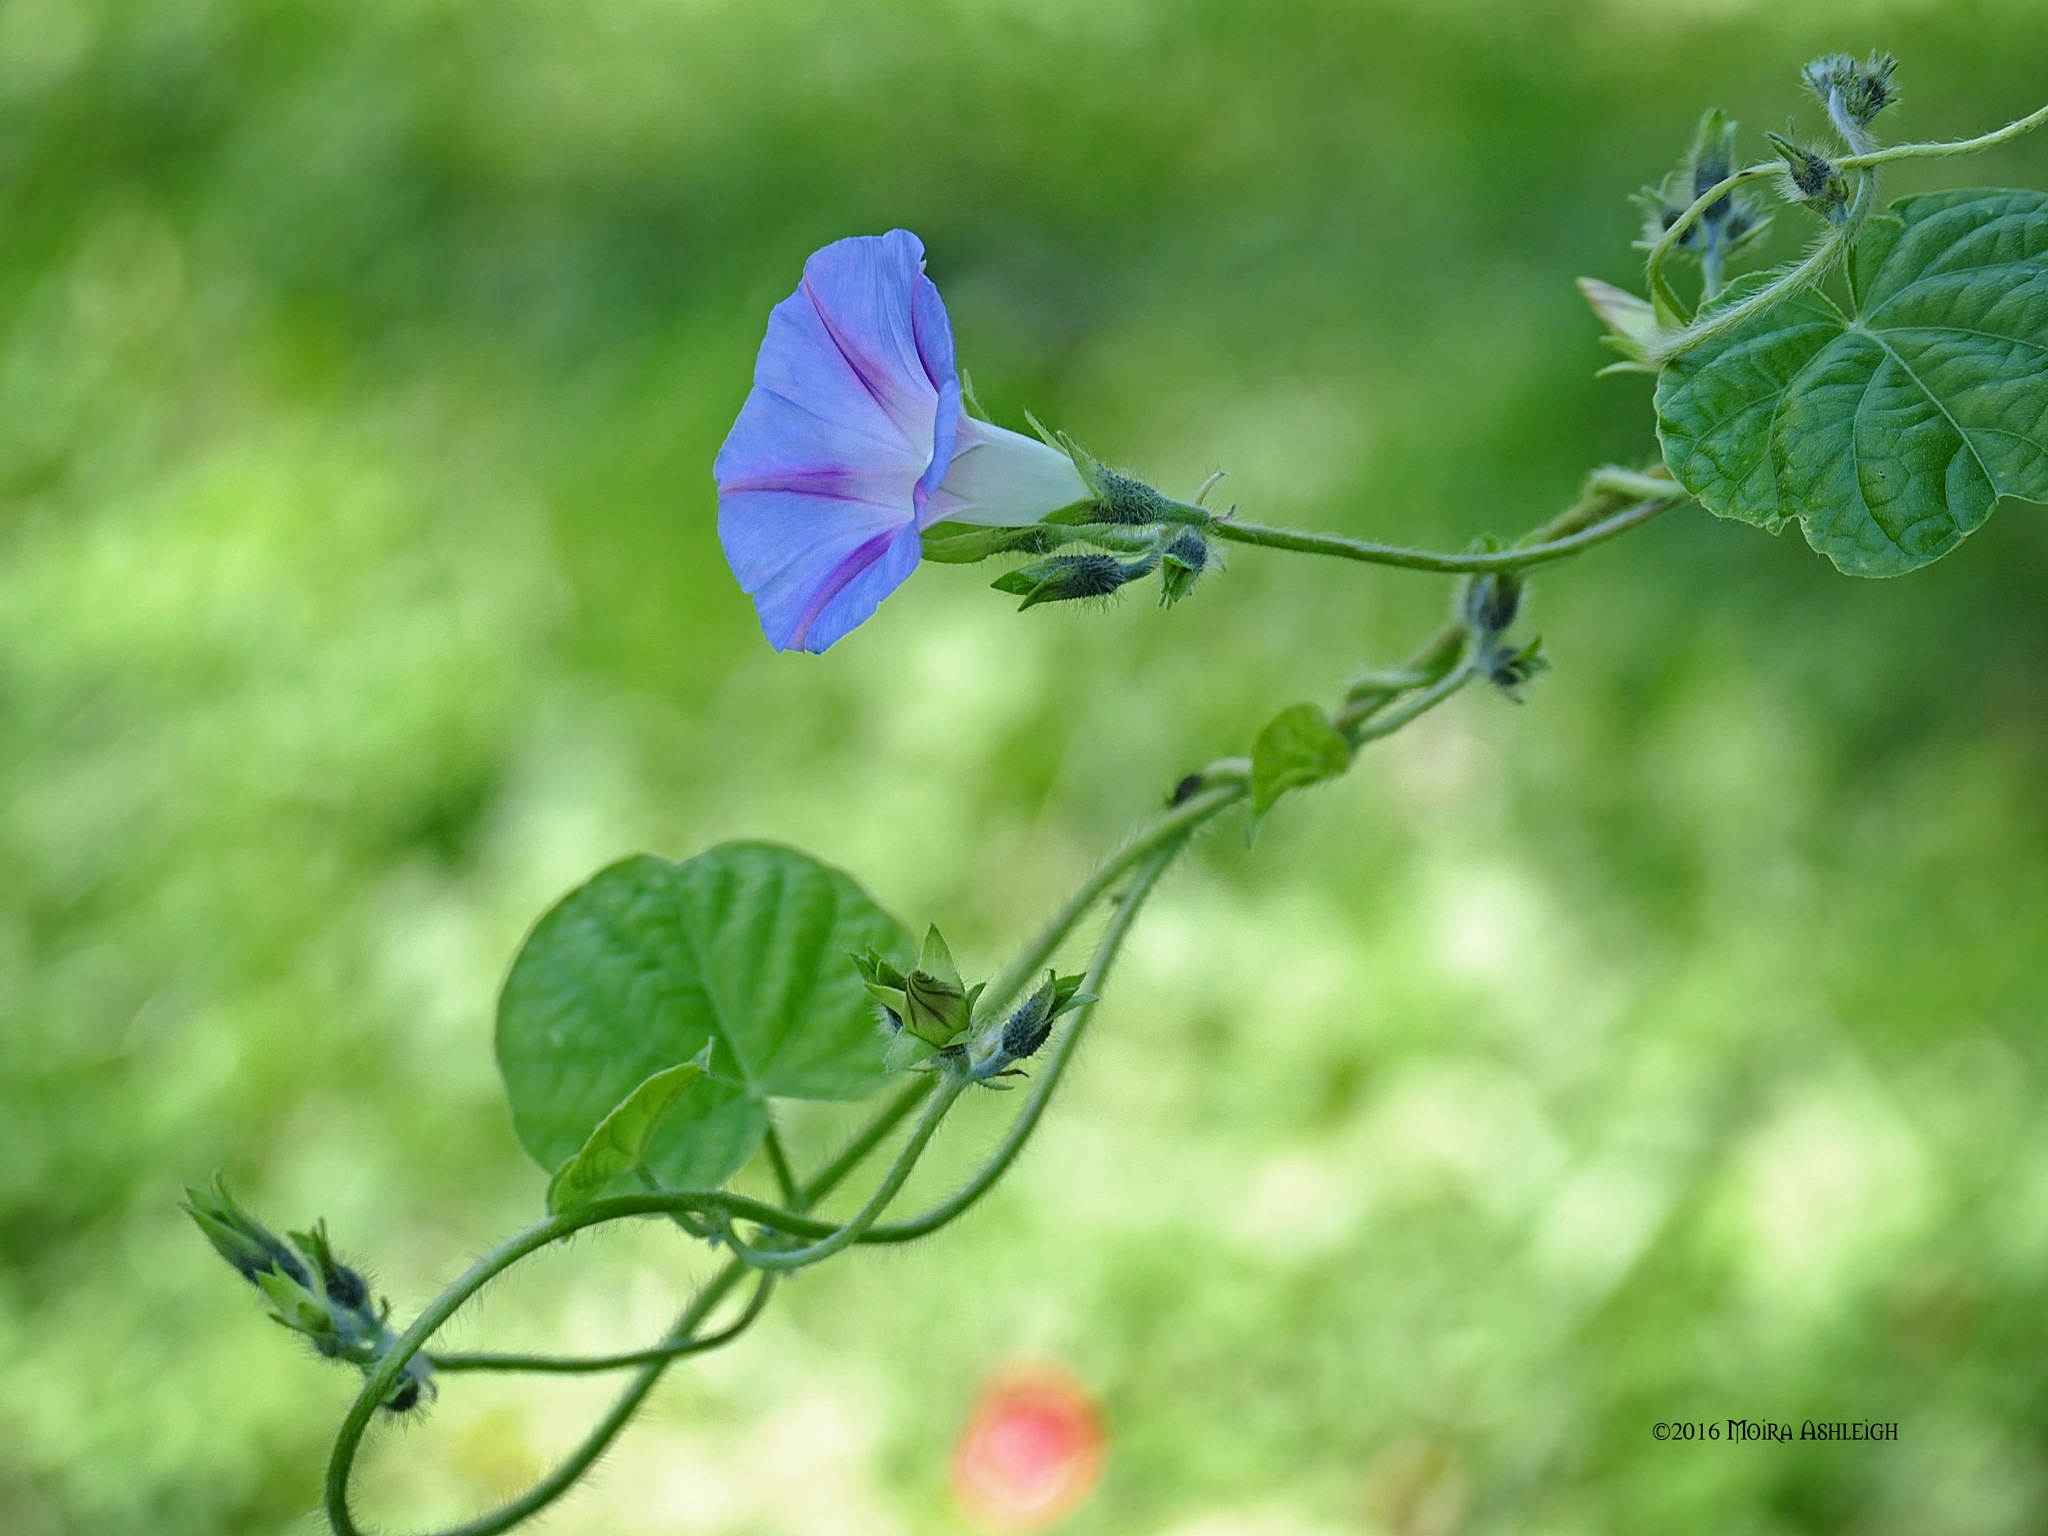 Morning Glory Vine by Moira Ashleigh